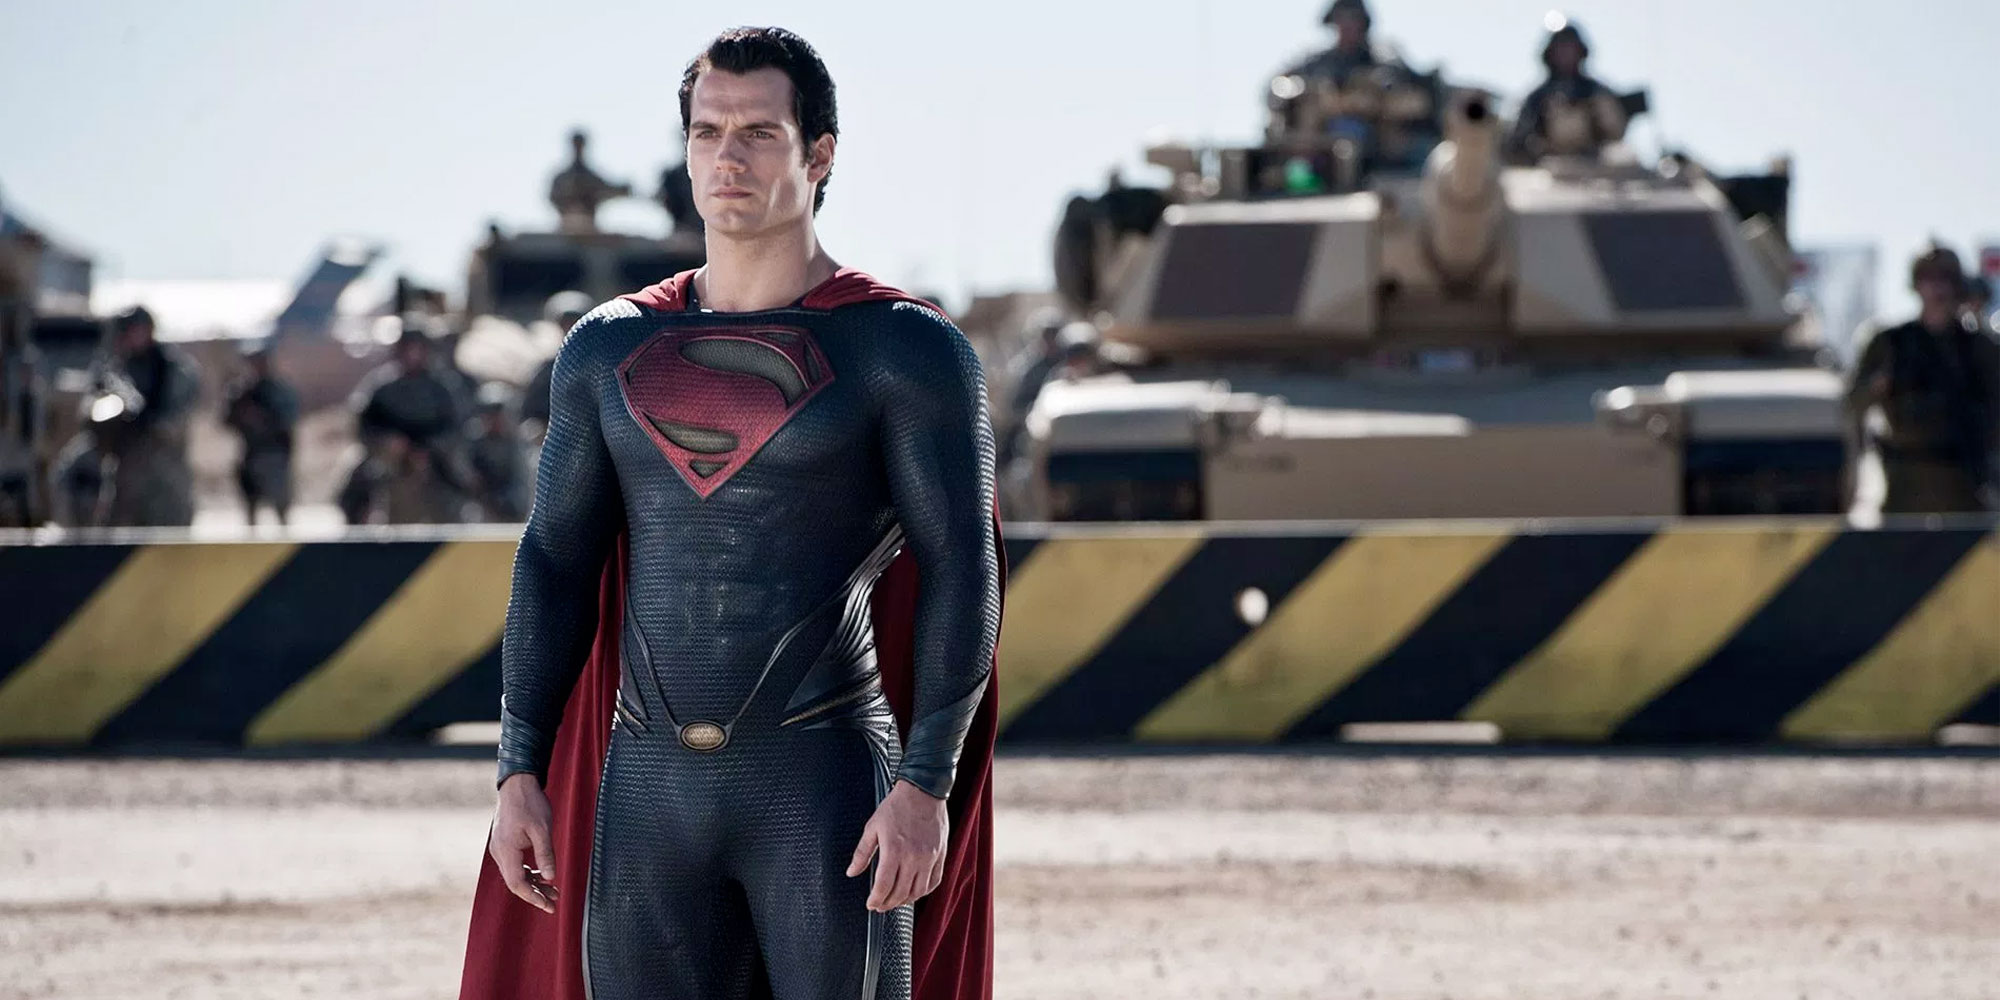 VUDU $5 Weekend Sale: Man of Steel 4K, Pacific Rim, The Accountant, The Legend of Tarzan, more